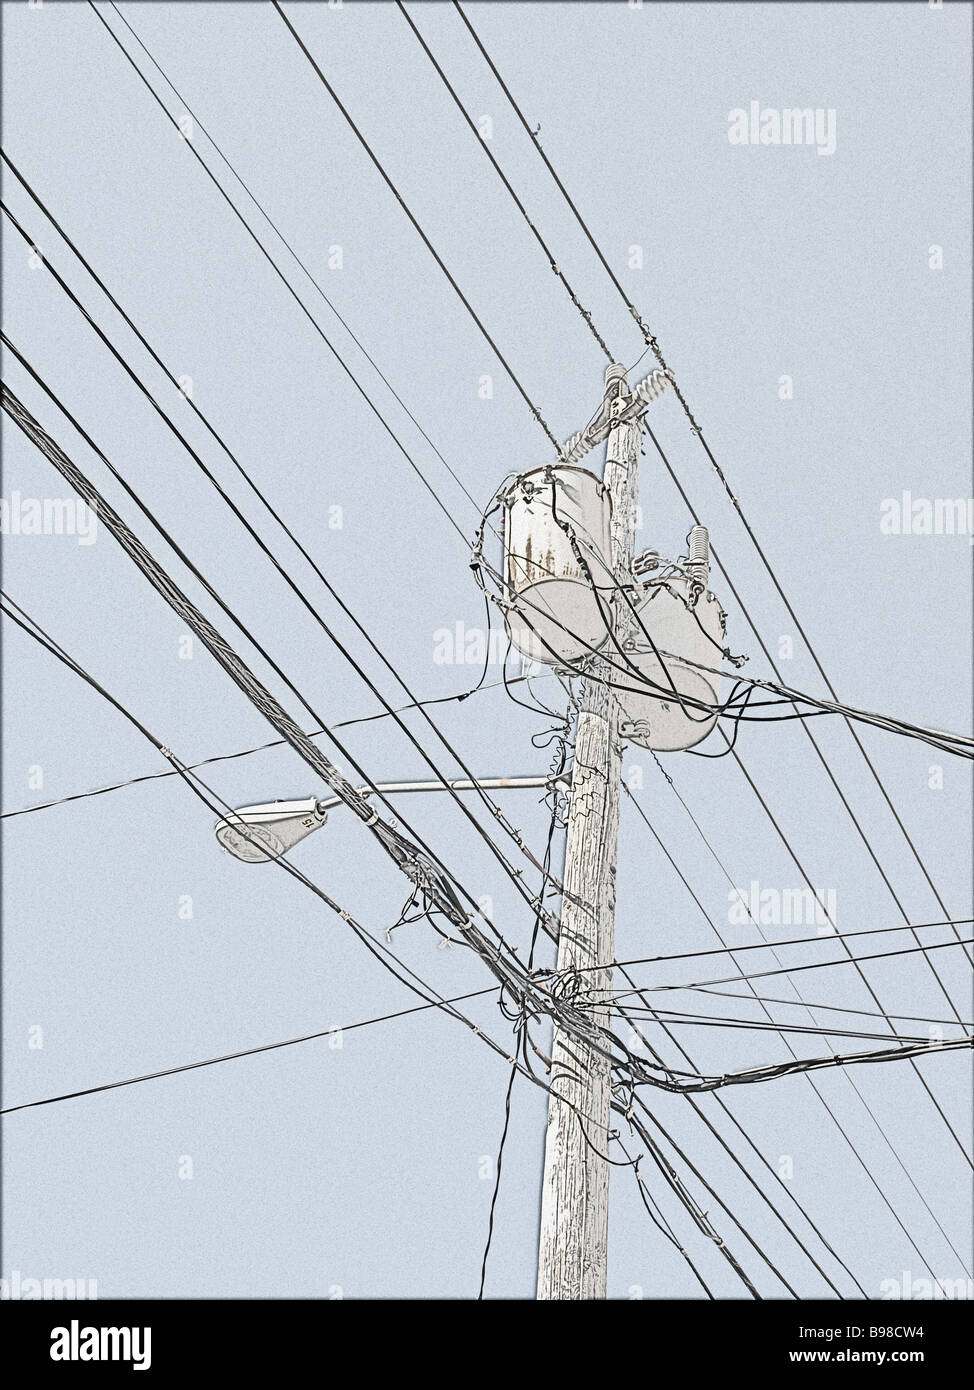 utility pole with generator street lamp and wires in a drawing type image  from photograph